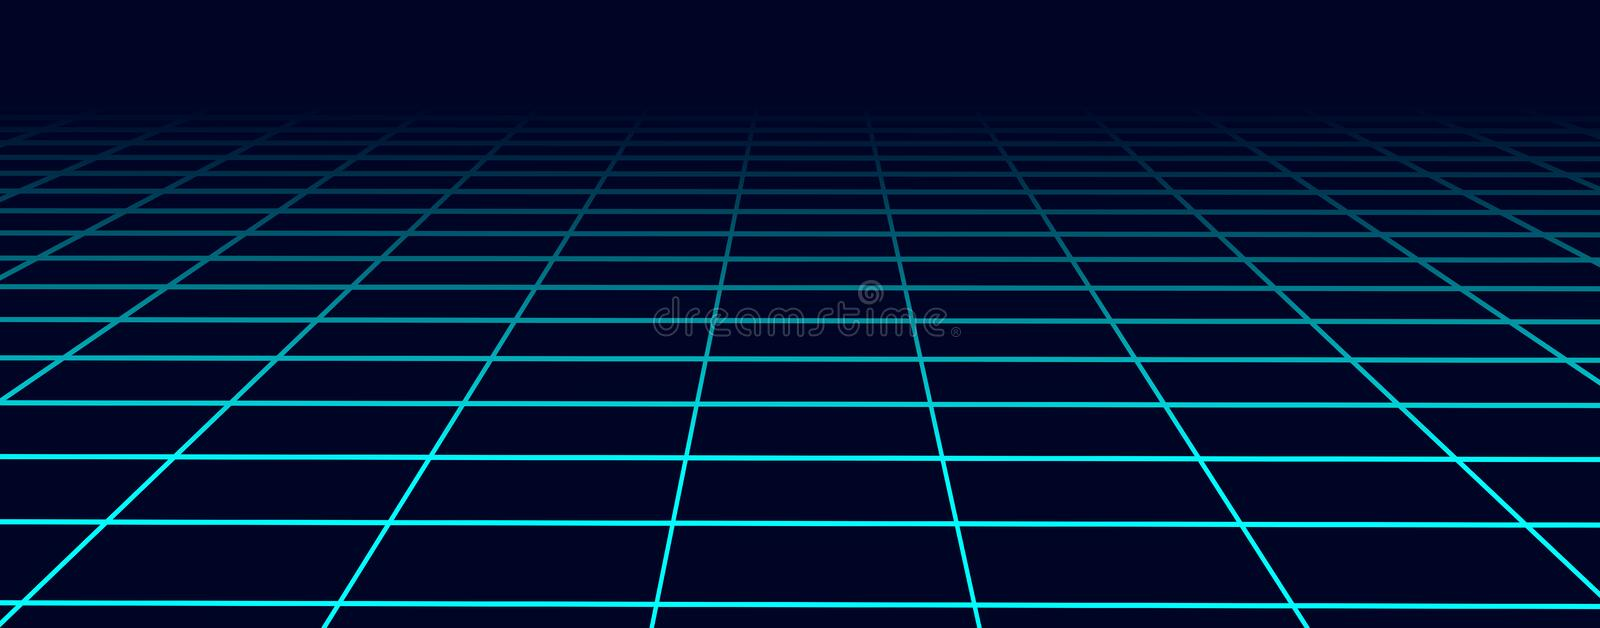 Perspective blue grid background. Abstract futuristic grid 1980s style. Vector illustration royalty free illustration